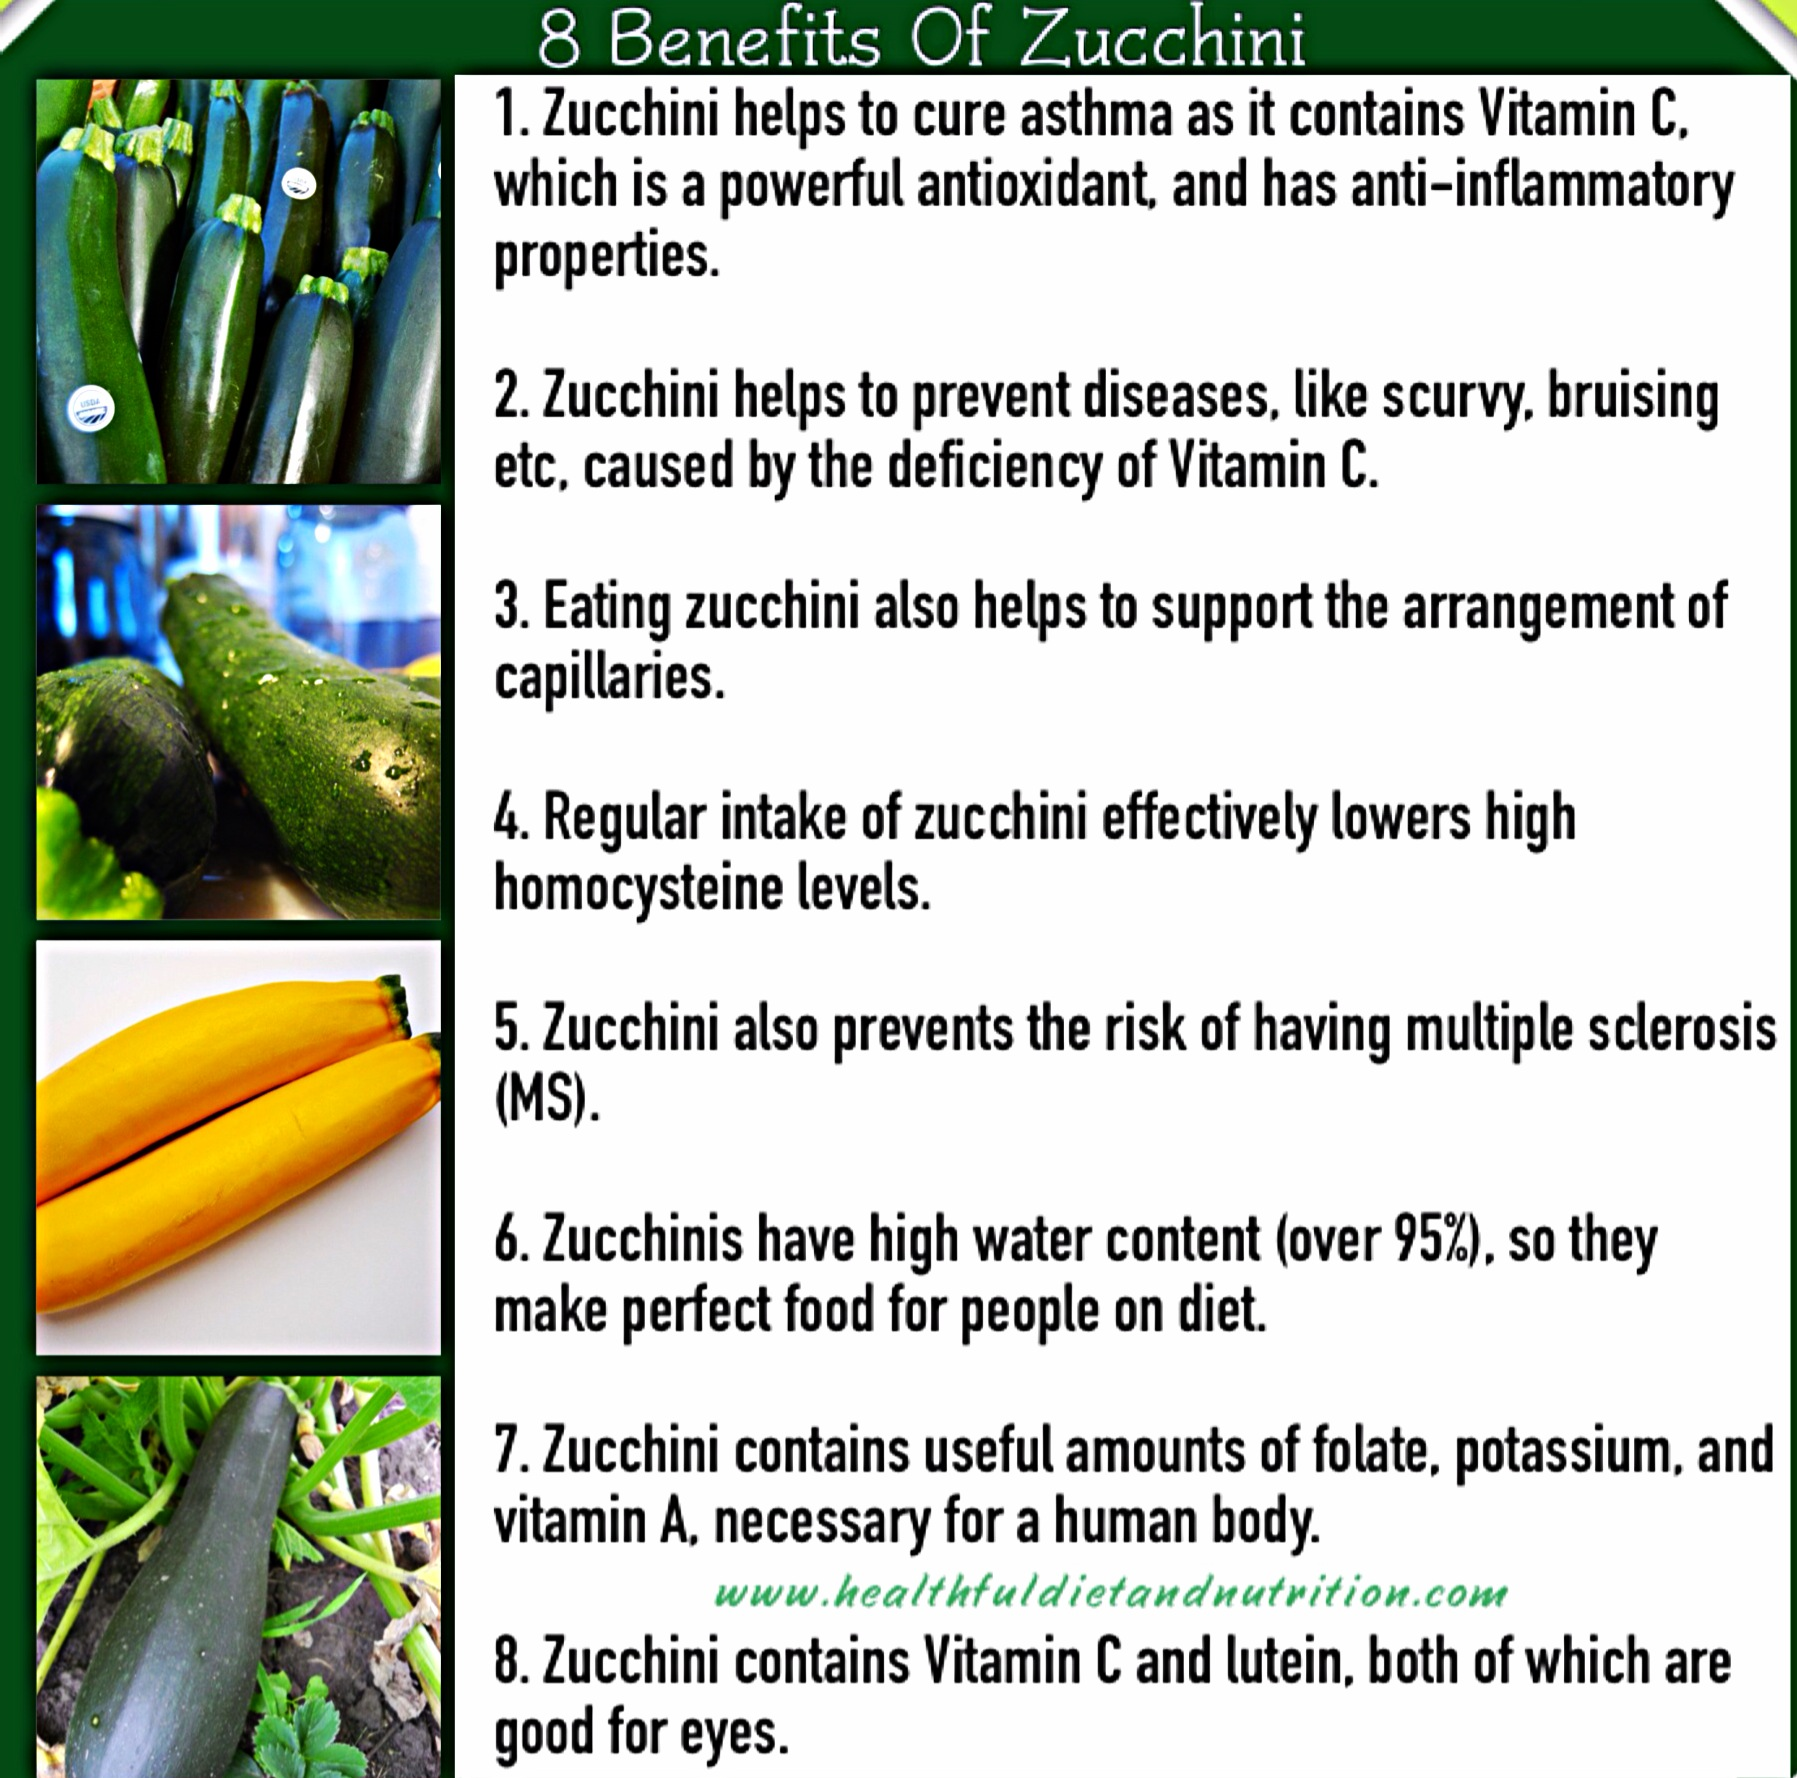 8 Benefits Of Zucchini